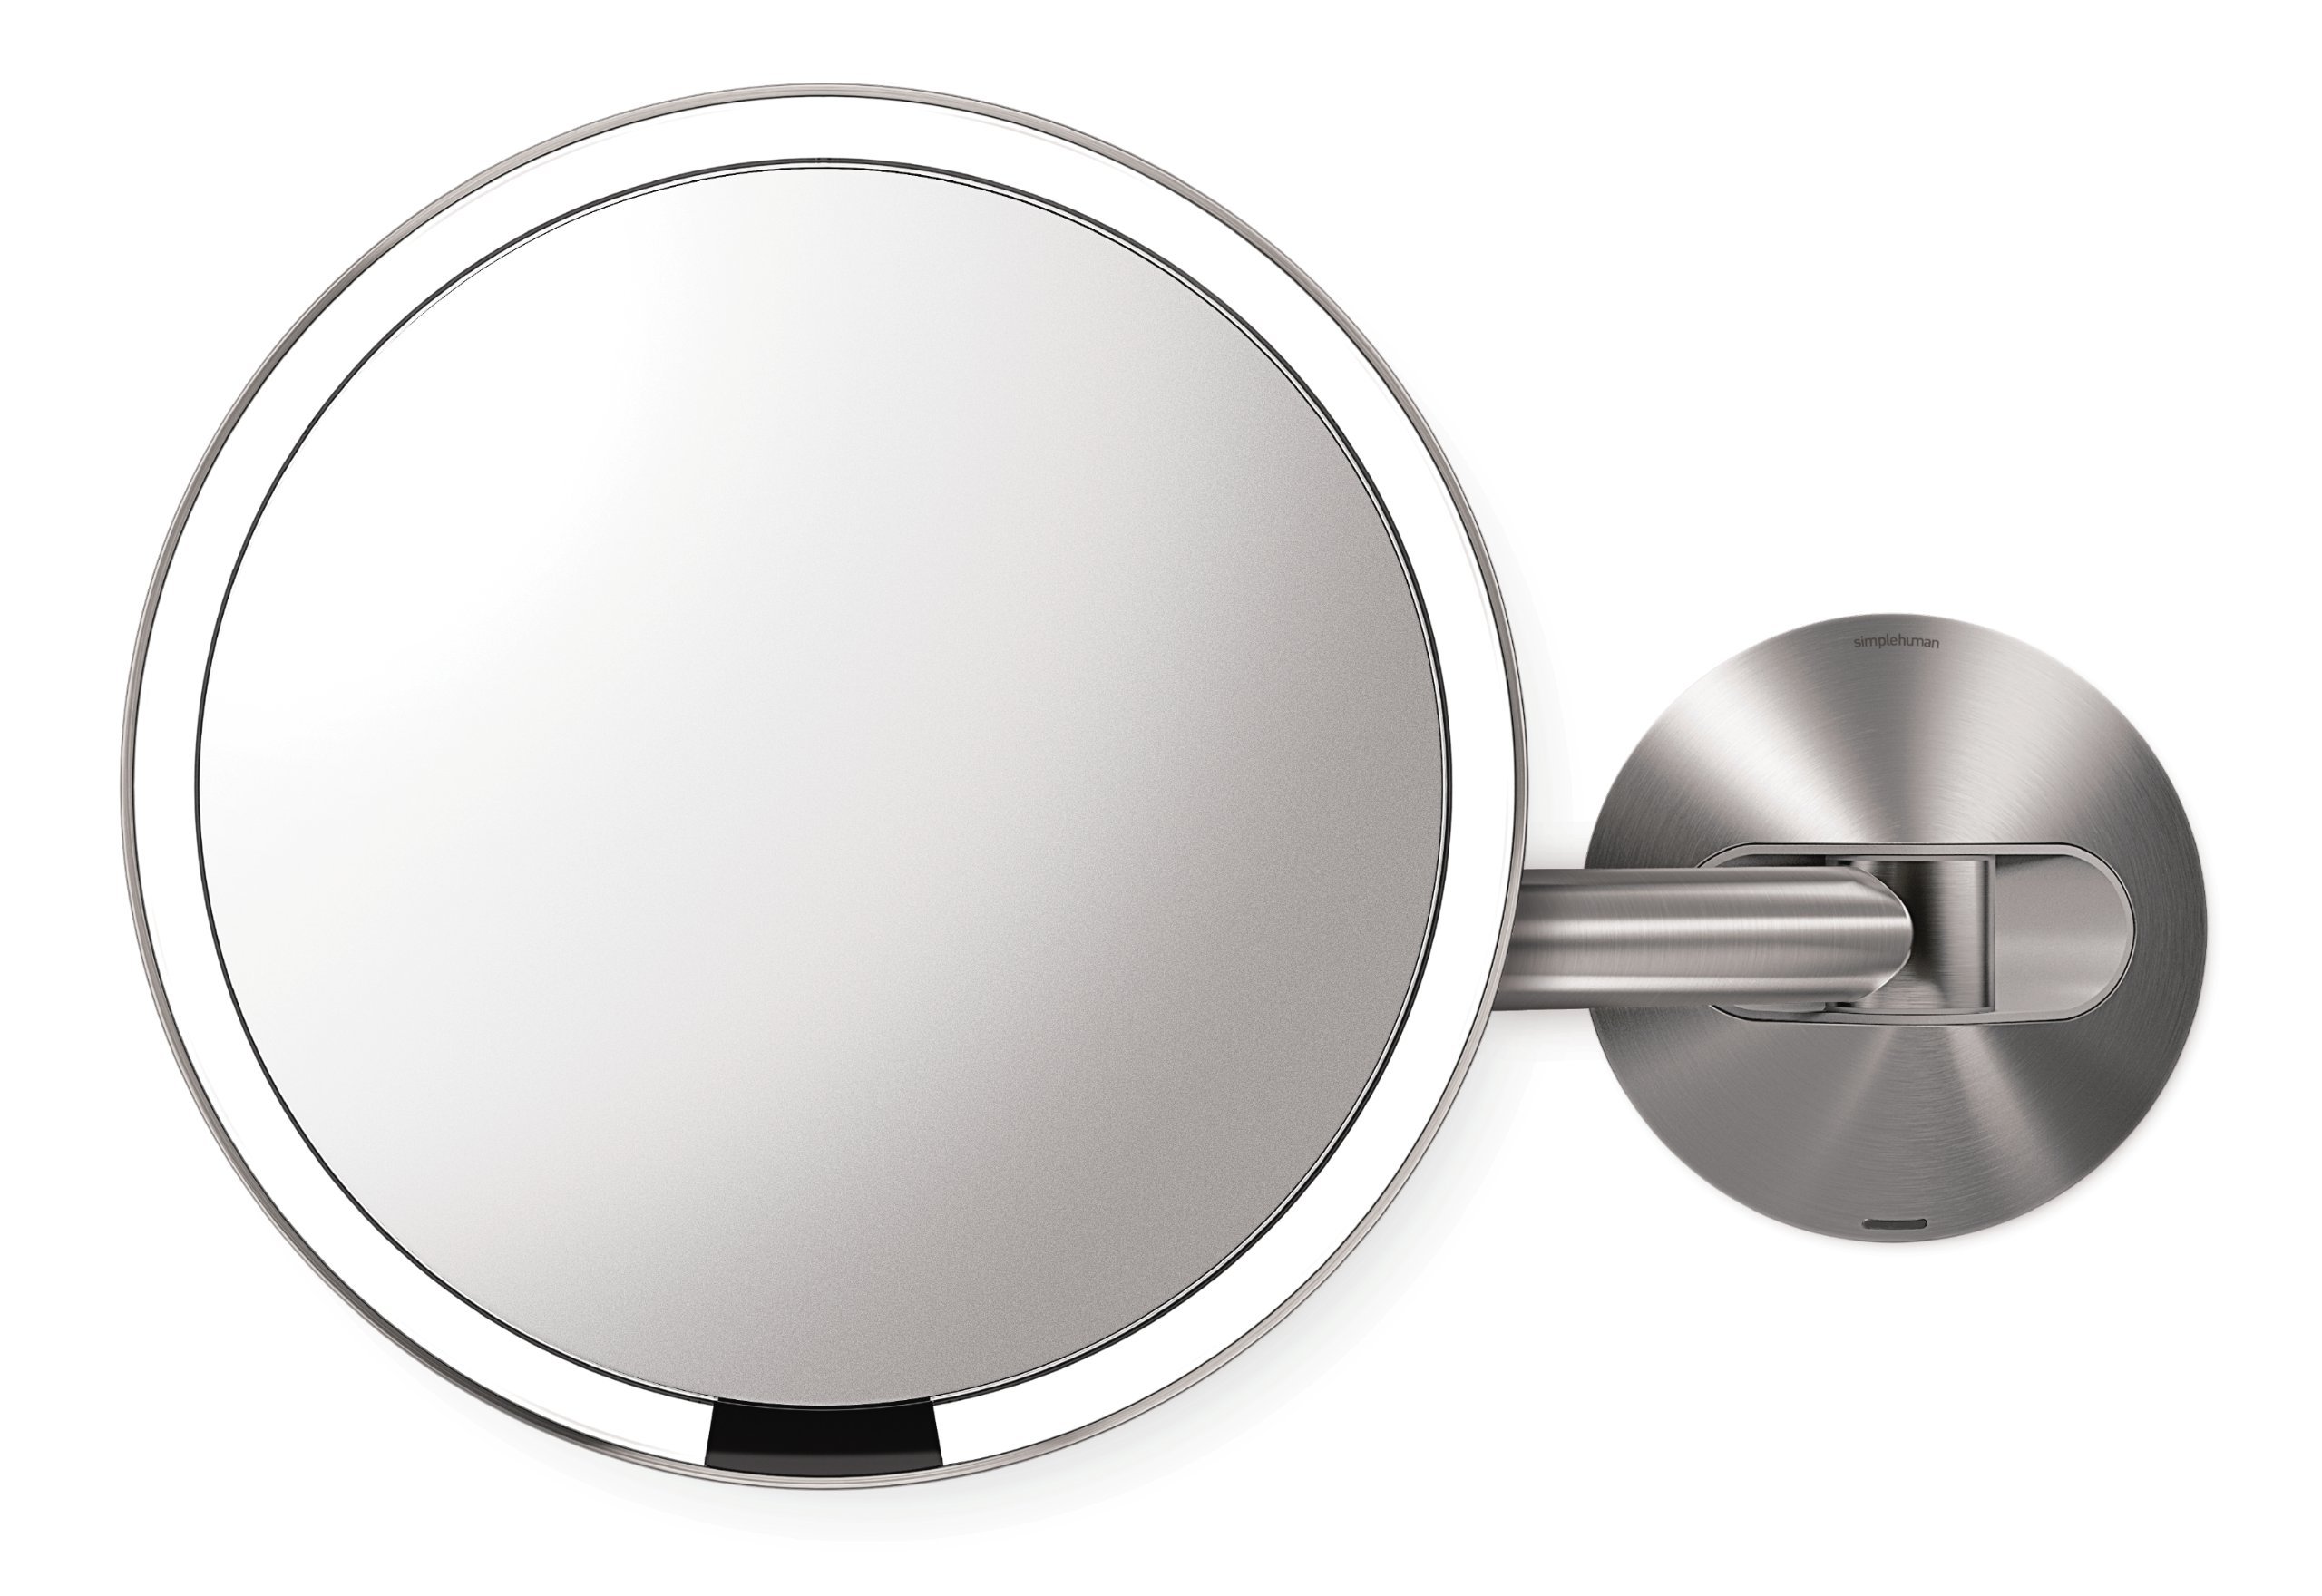 simplehuman 8 inch Wall Mount Sensor Mirror, Lighted Makeup Mirror, Rechargeable 5x Magnification by simplehuman